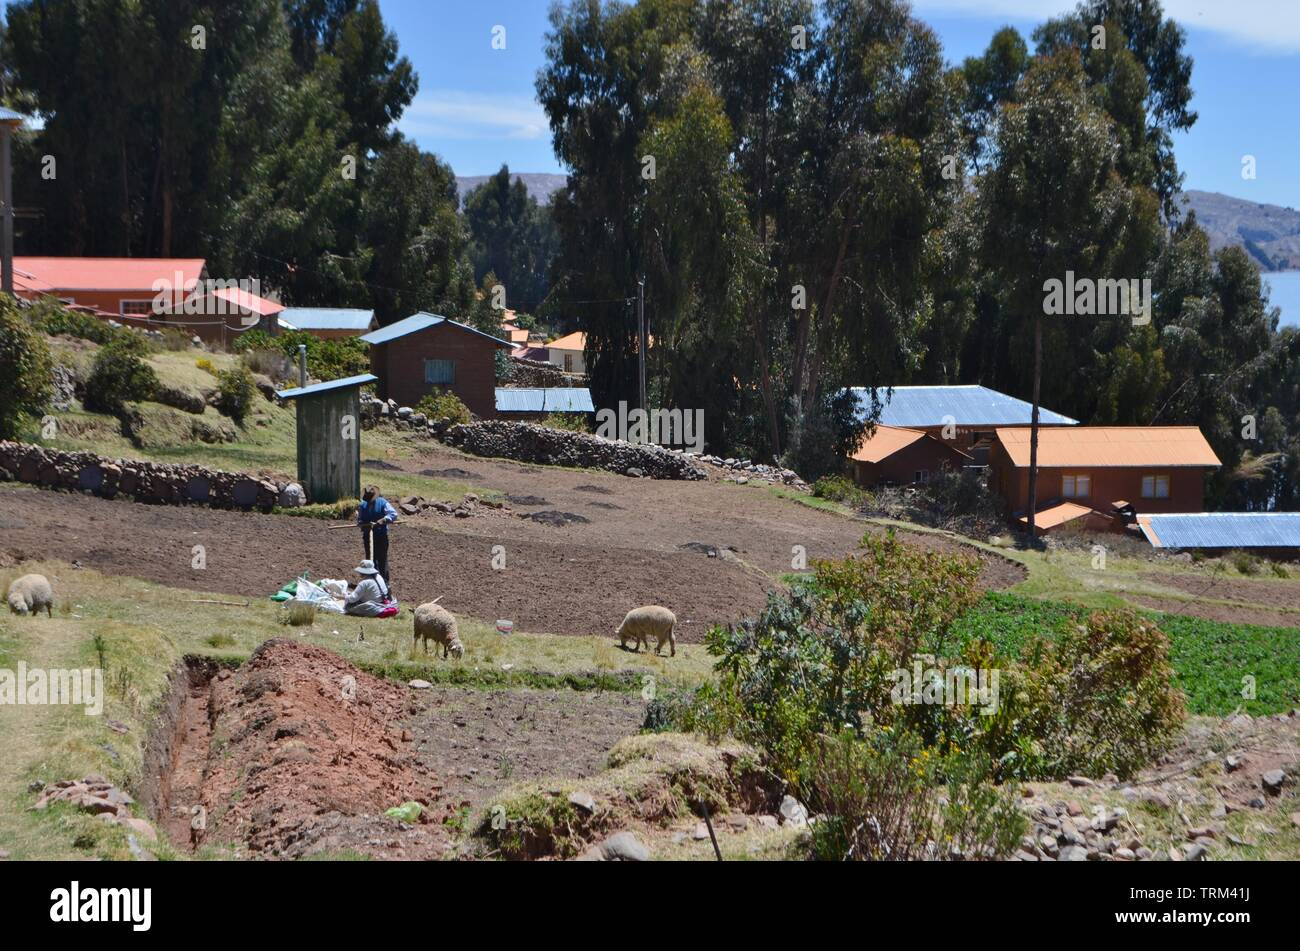 Peru,Puno. Rural houses in the countryside near Lake Titicaca. Stock Photo